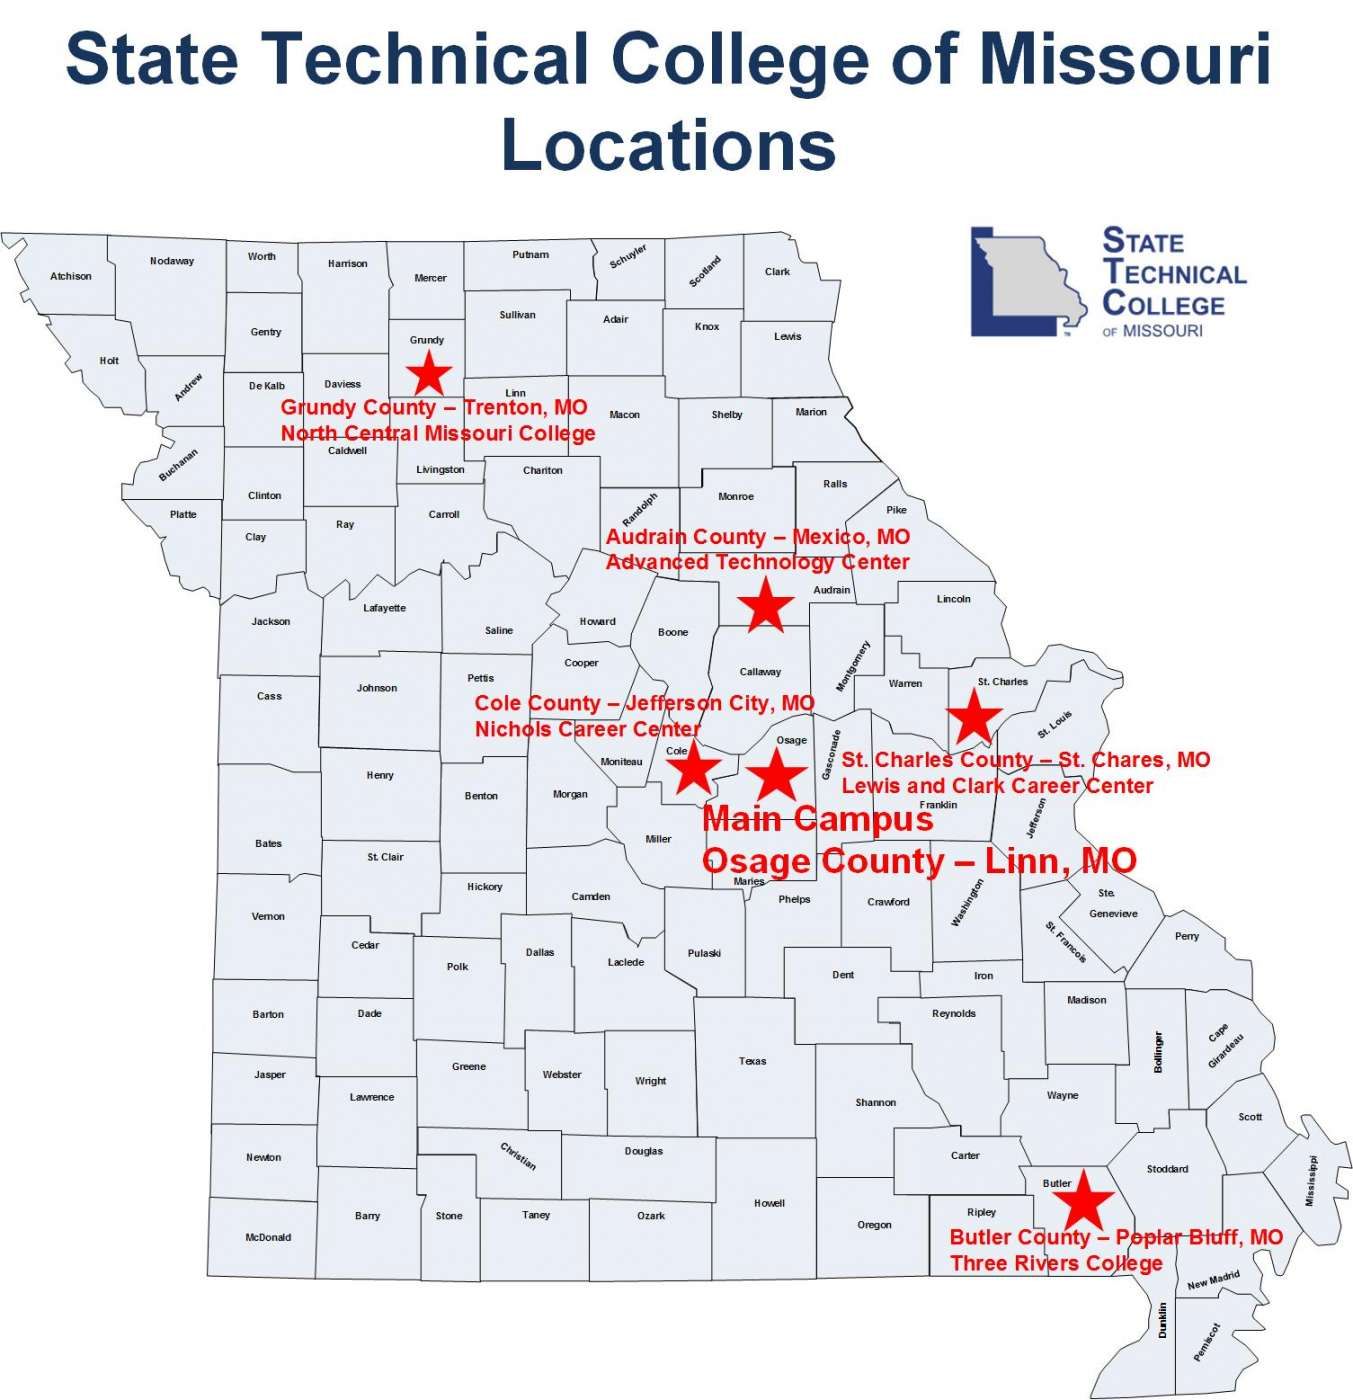 Map Directions State Technical College Of Missouri - Missouri map